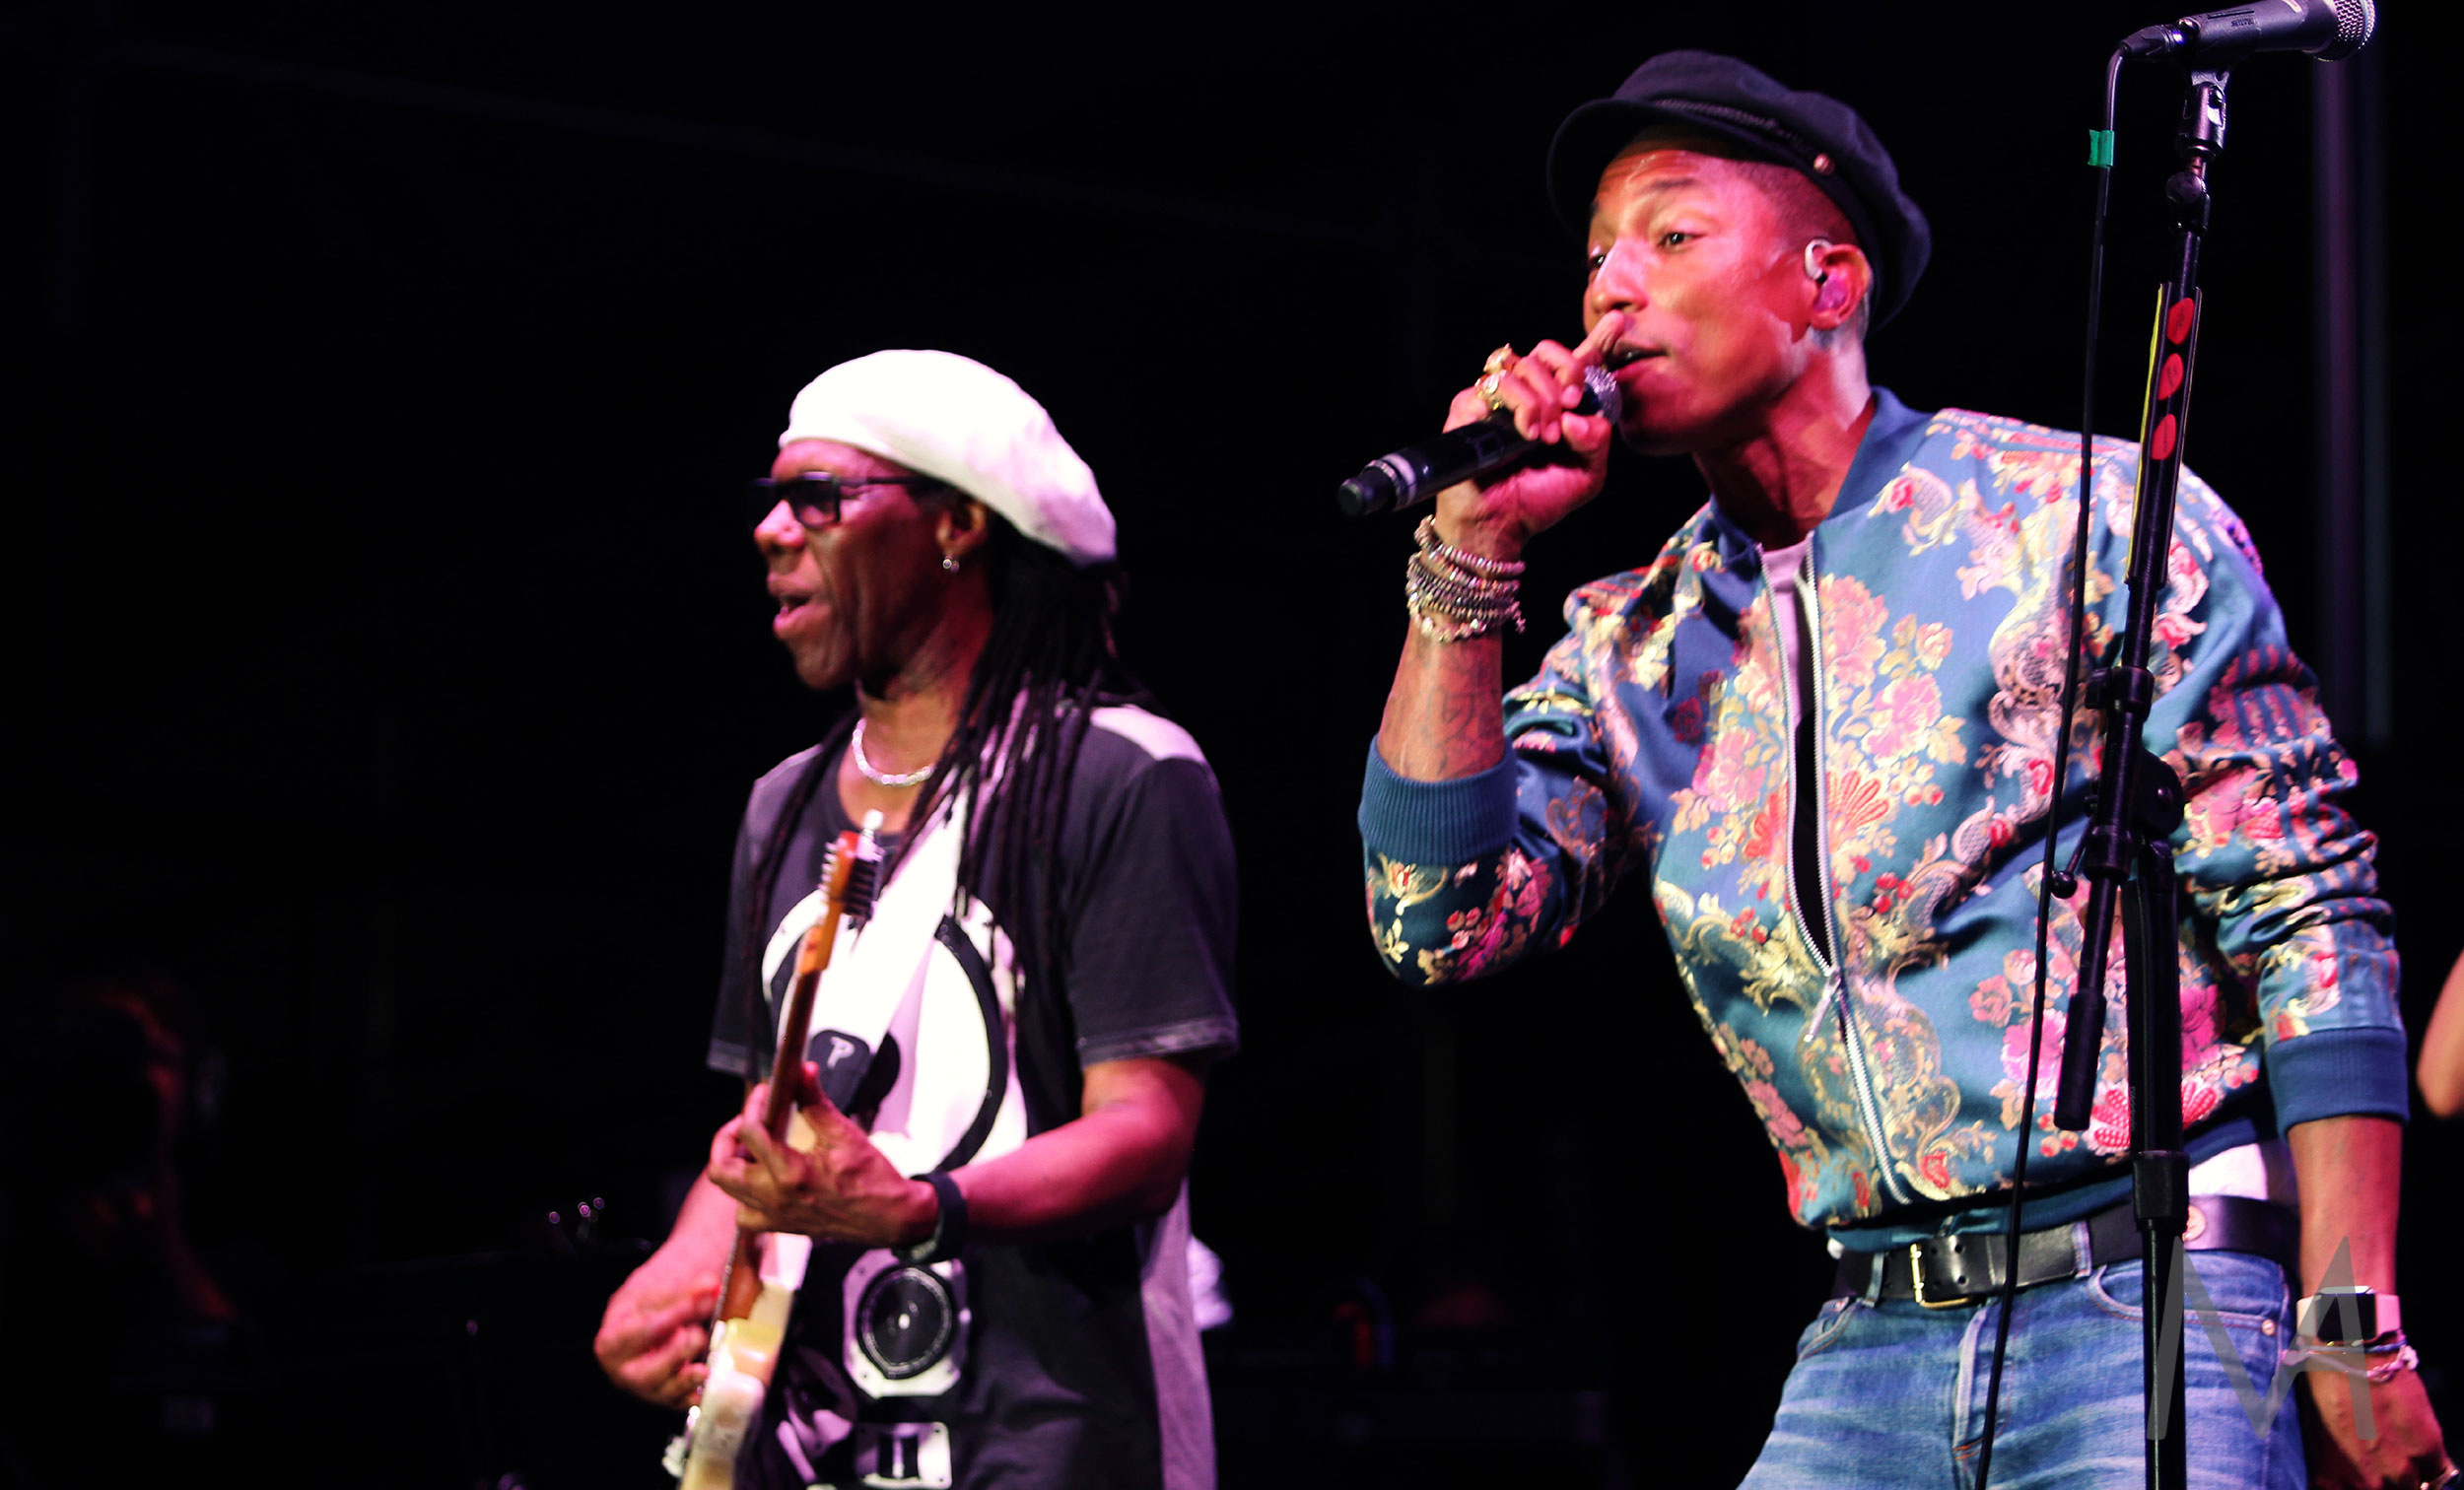 Nile Rodgers and Pharrell Williams